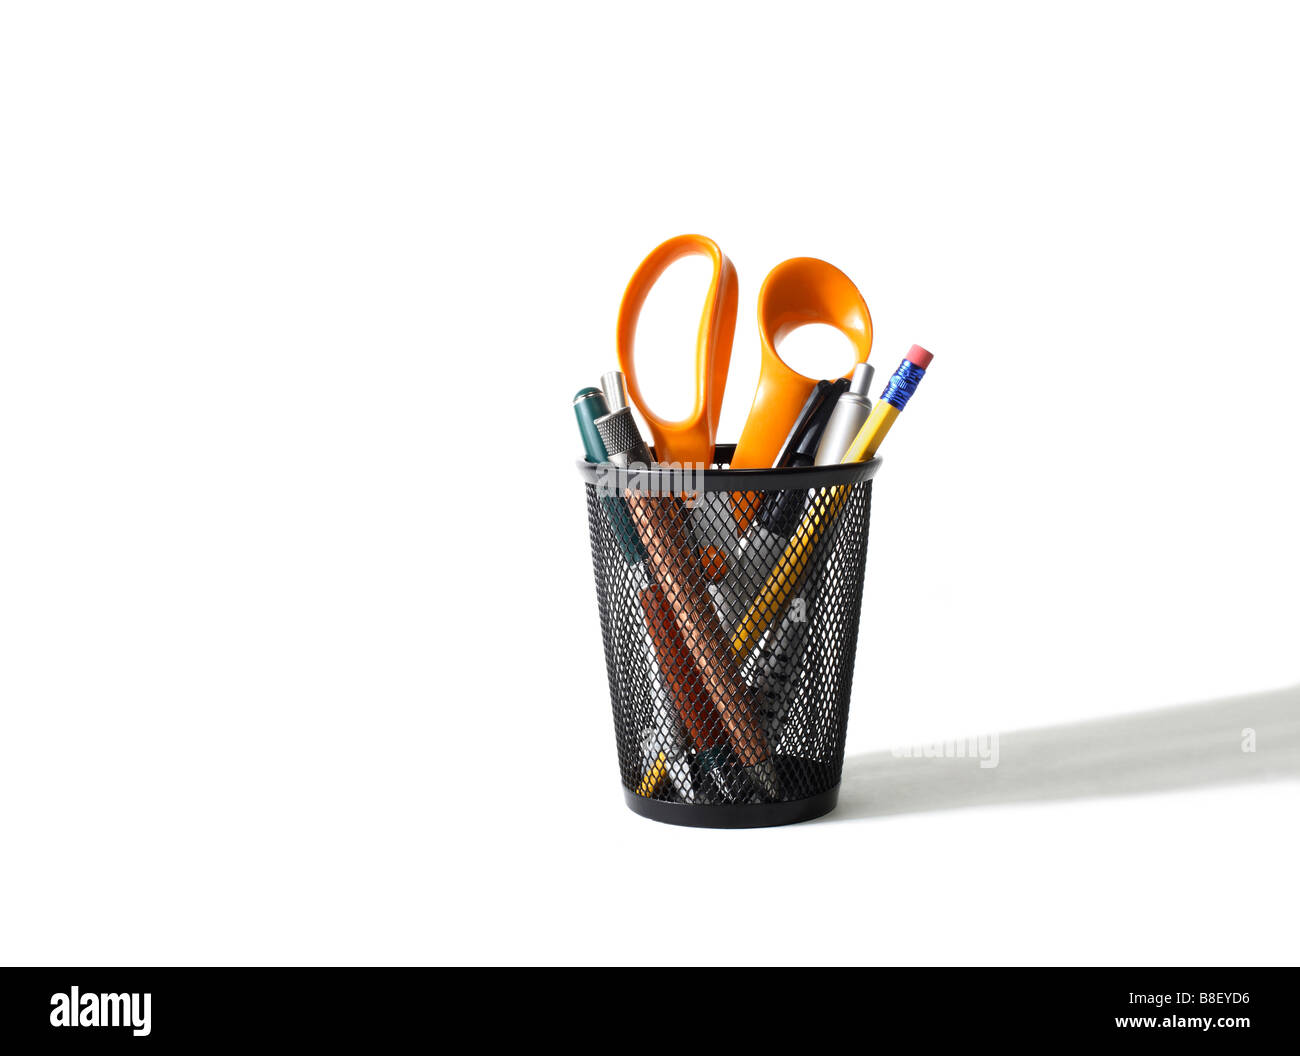 pen and pencil holder - Stock Image